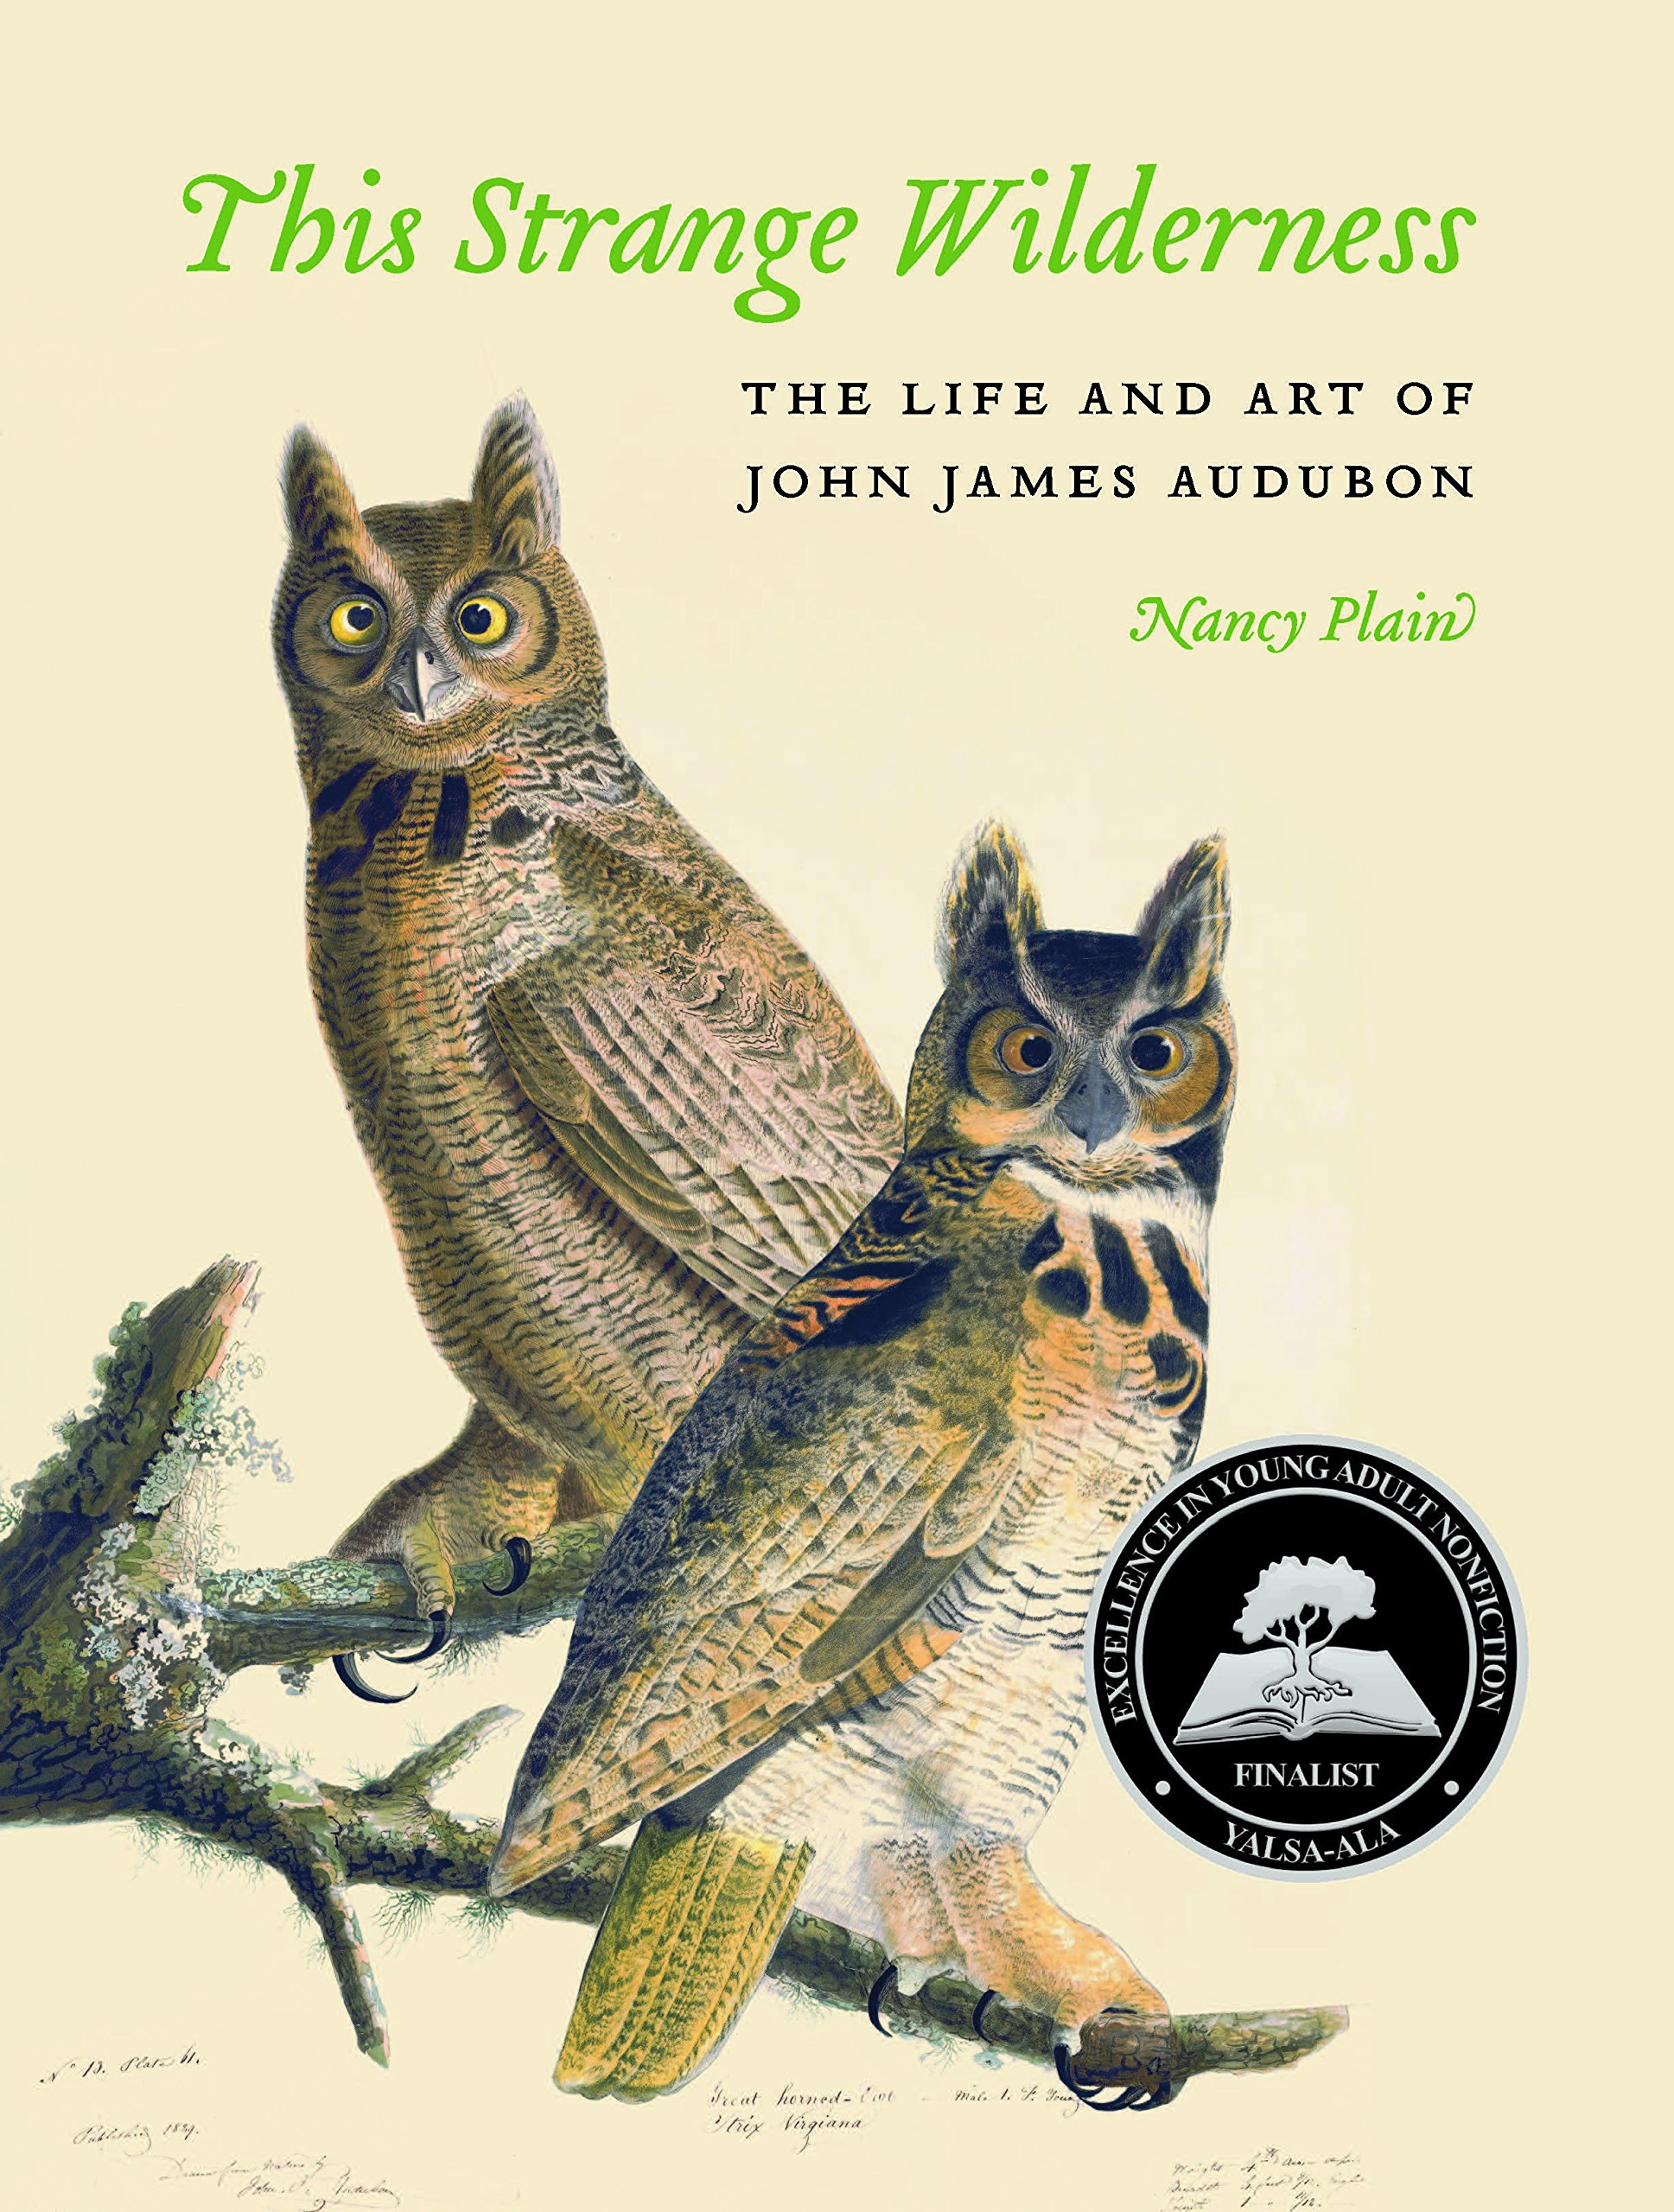 This Strange Wilderness: The Life and Art of John James Audubon: Plain, Nancy: 9780803248847: Amazon.com: Books